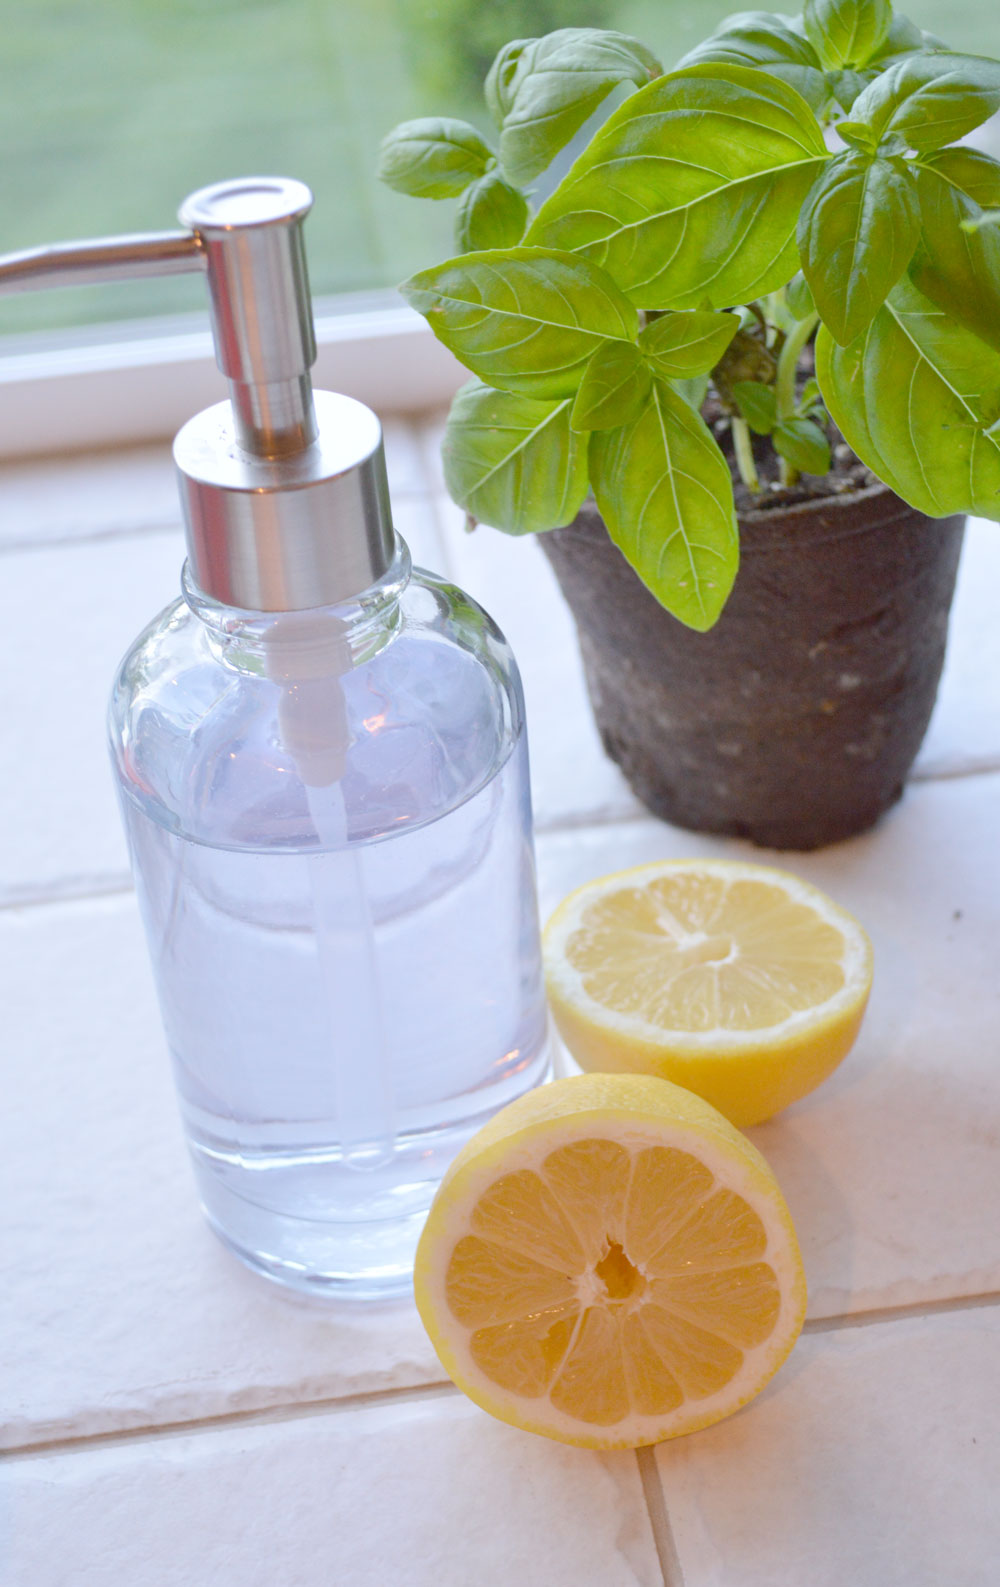 Cleaning with lemon - tips to degrease your sink and stove - Mommy Scene